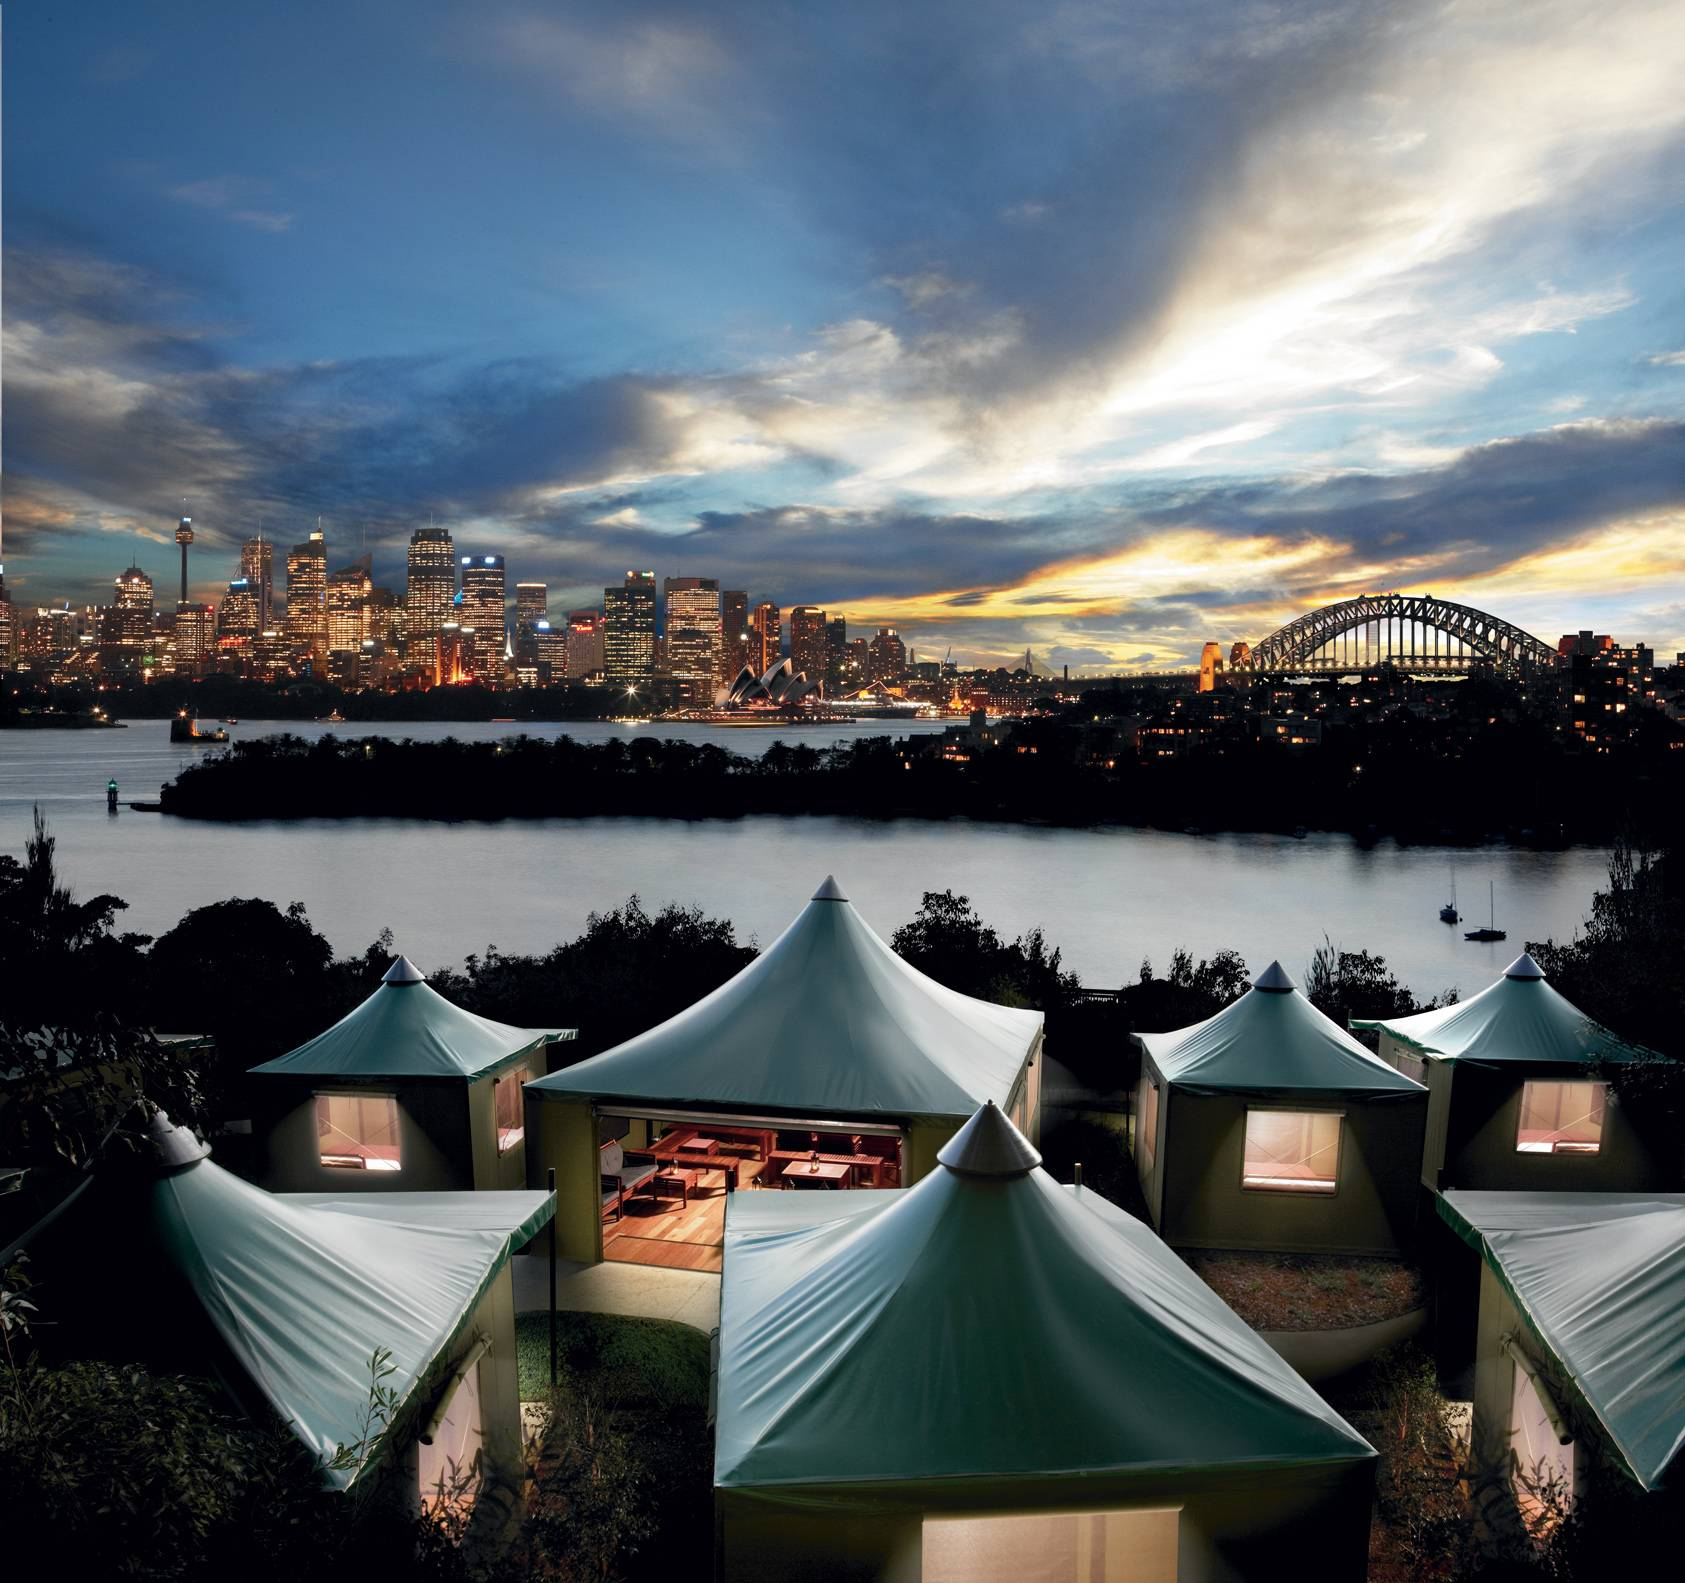 Sydney's Taronga Zoo Roar and Snore